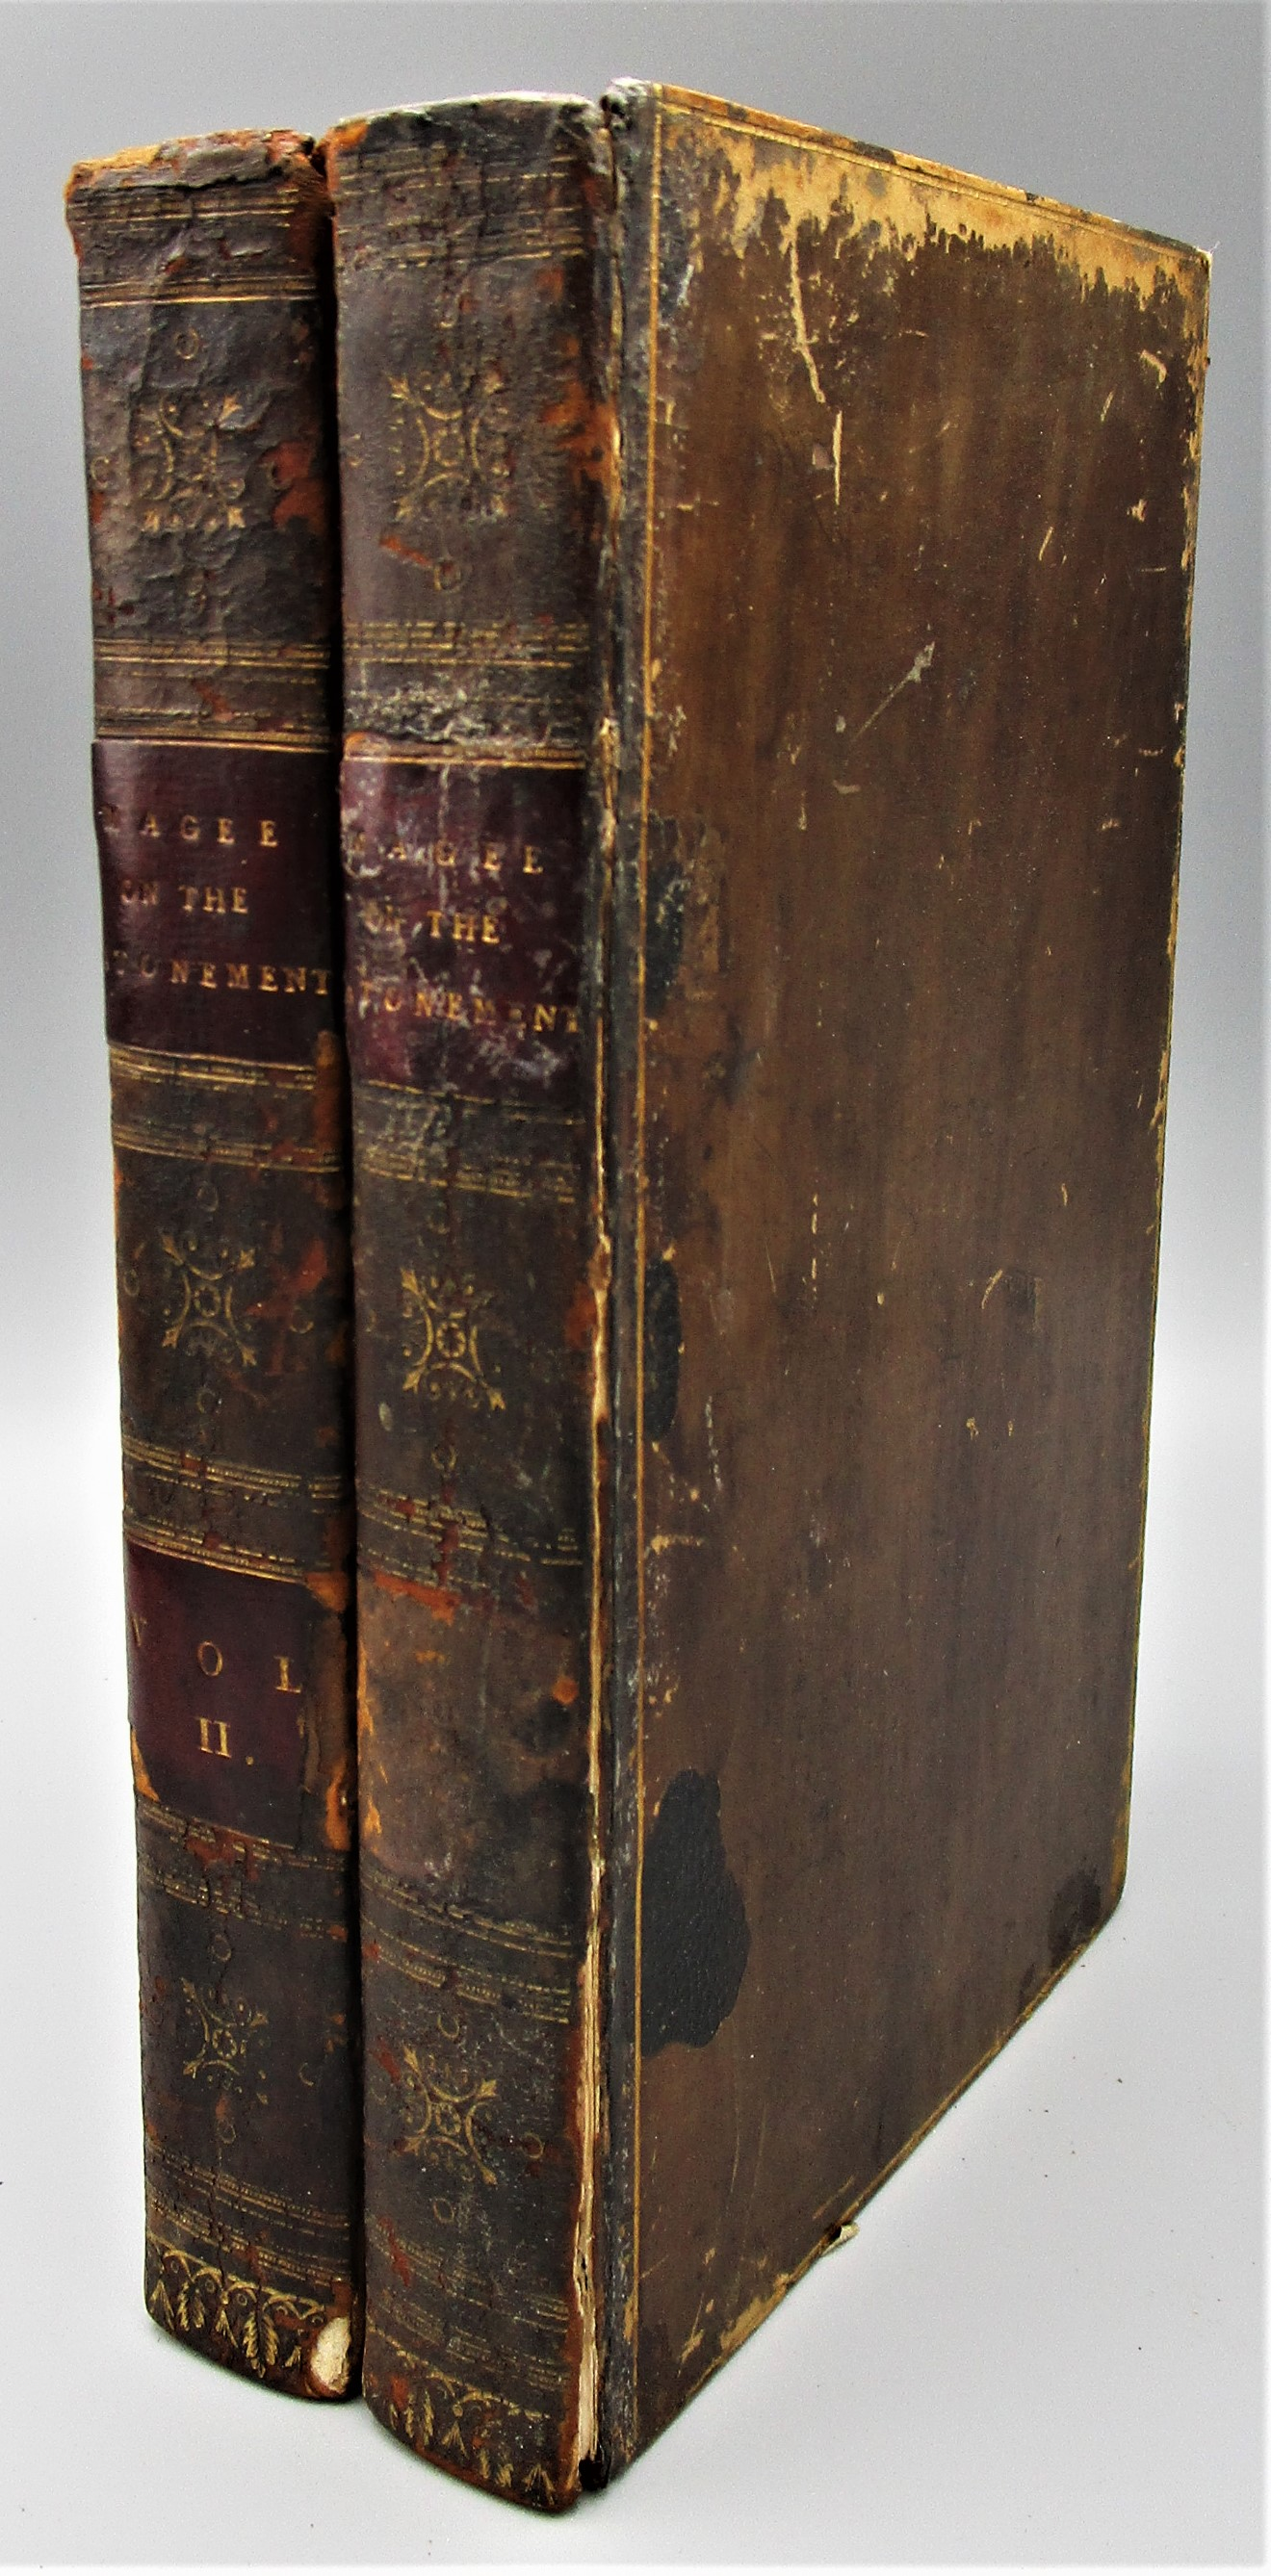 DISCOURSES ON THE DOCTRINES OF ATONEMENT & SACRIFICE, by Wm. Magee - 1809 [2 vols]